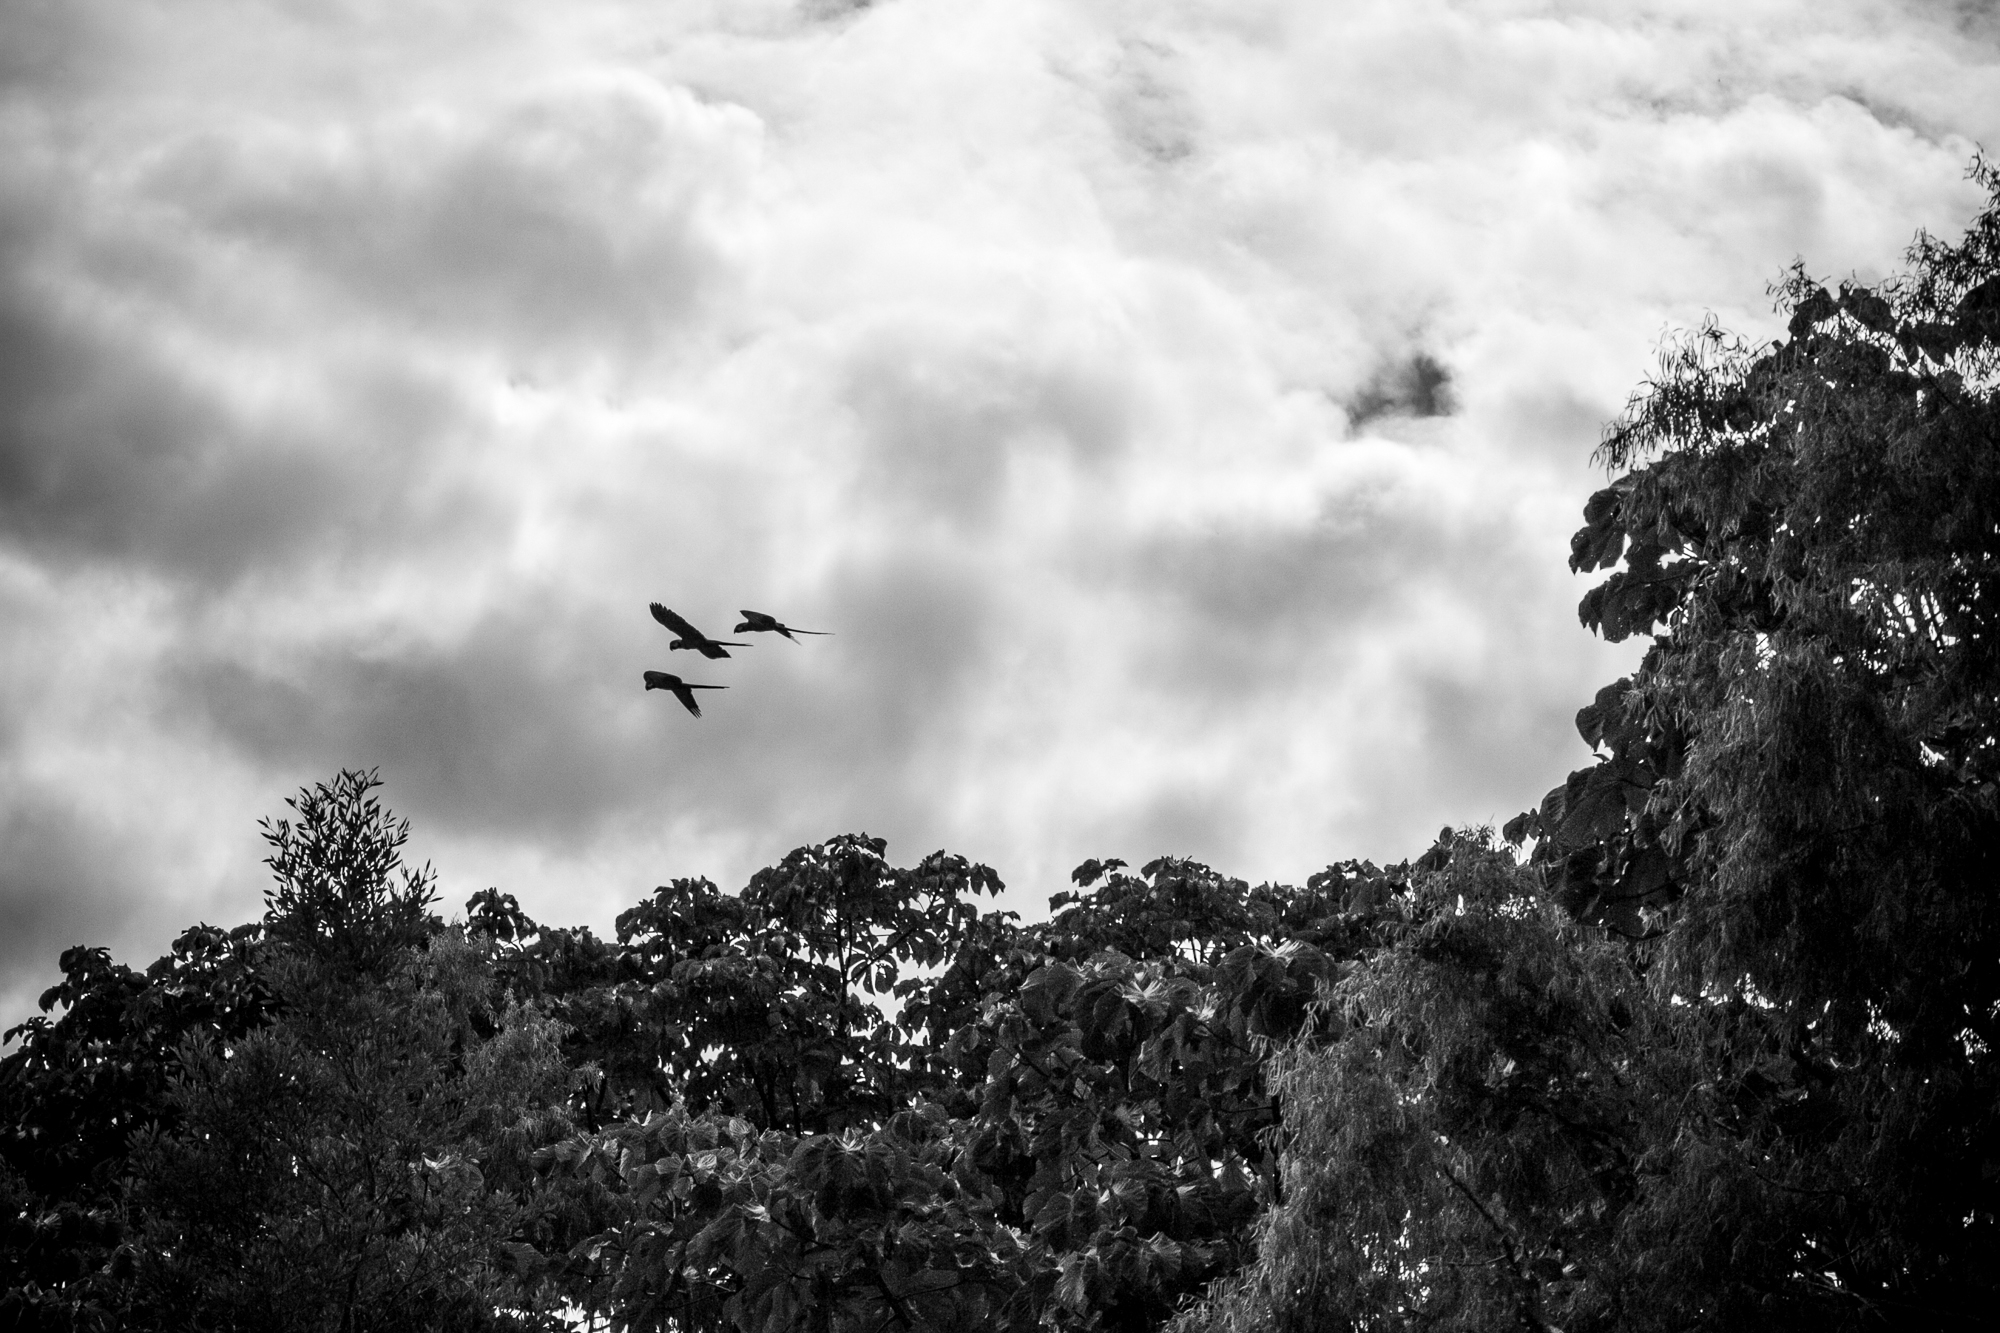 Group of Macaw parrots flying overhead.